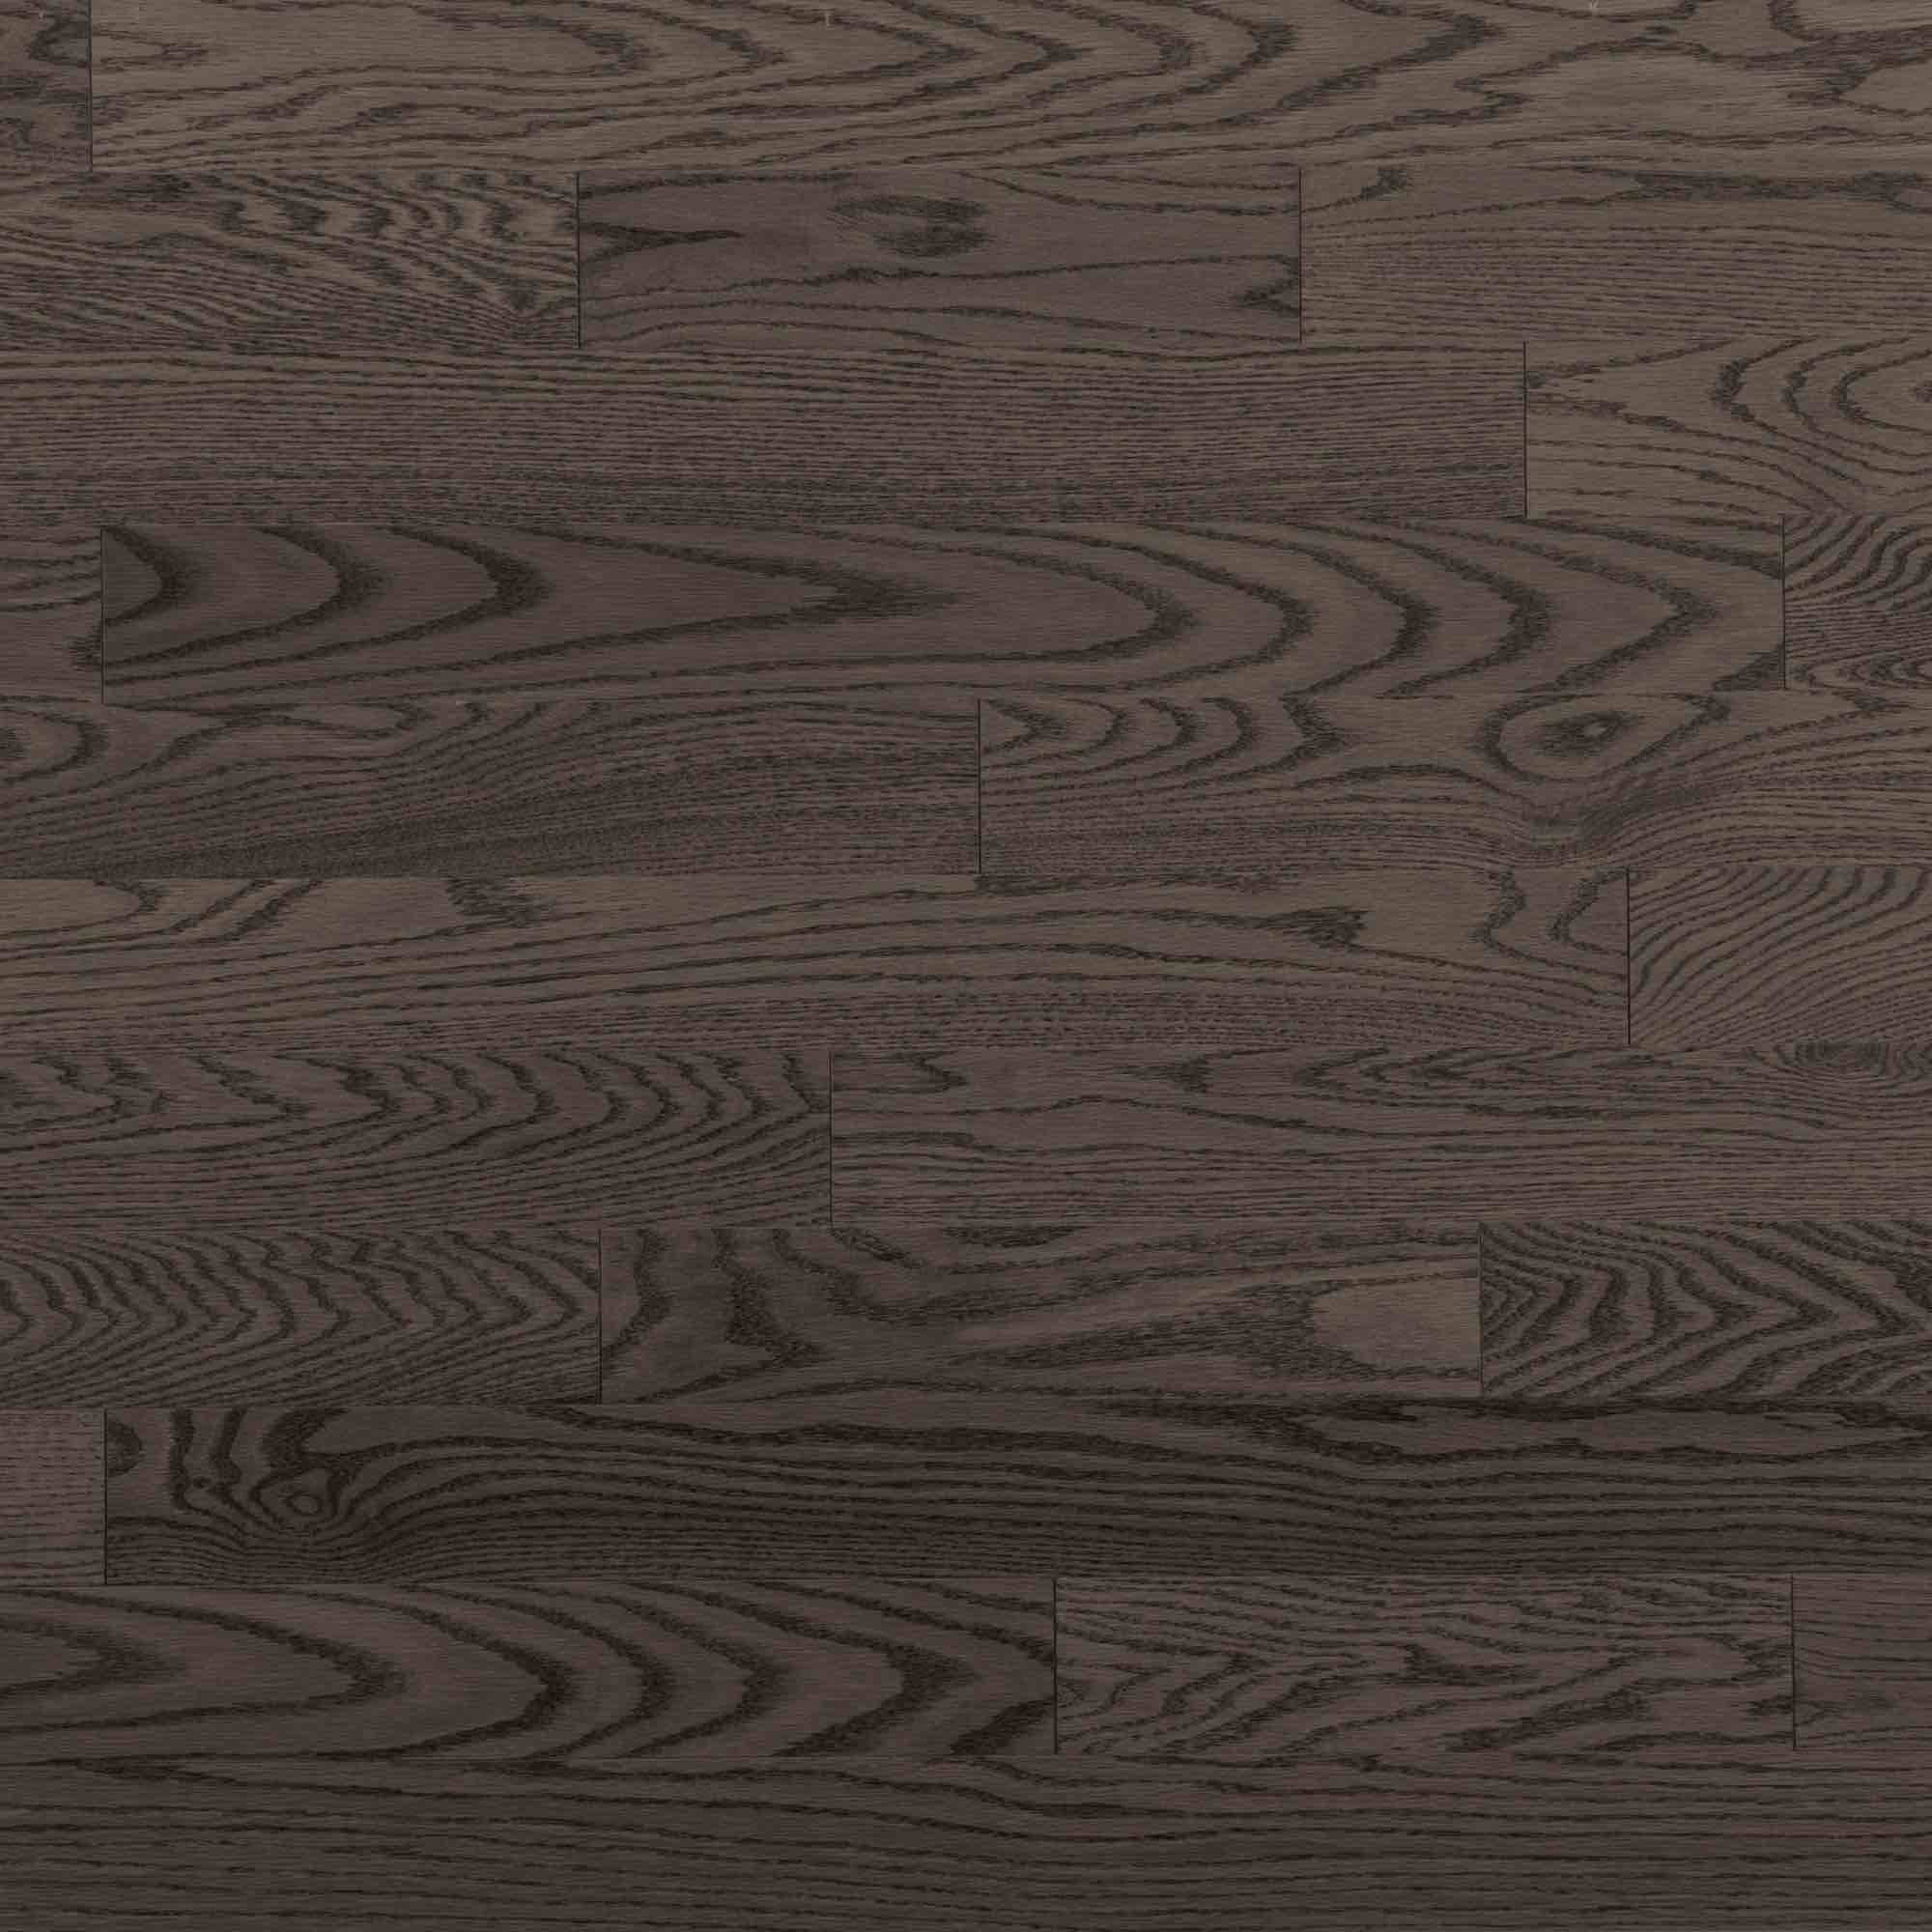 types of laminate hardwood floors of hardwood westfloors west vancouver hardwood flooring carpet with featured hardwoods red oak charcoal